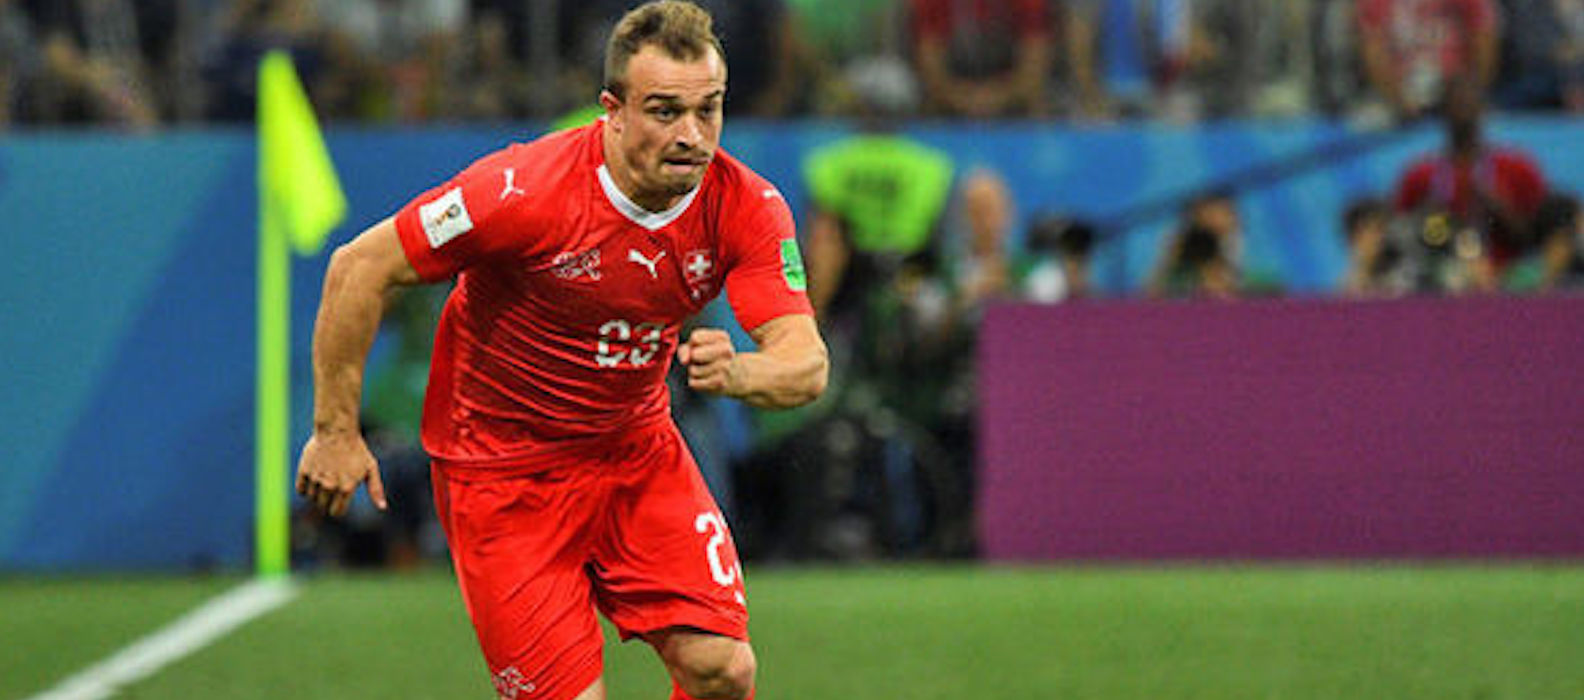 Manchester United lost Xherdan Shaqiri to Liverpool for this reason: report